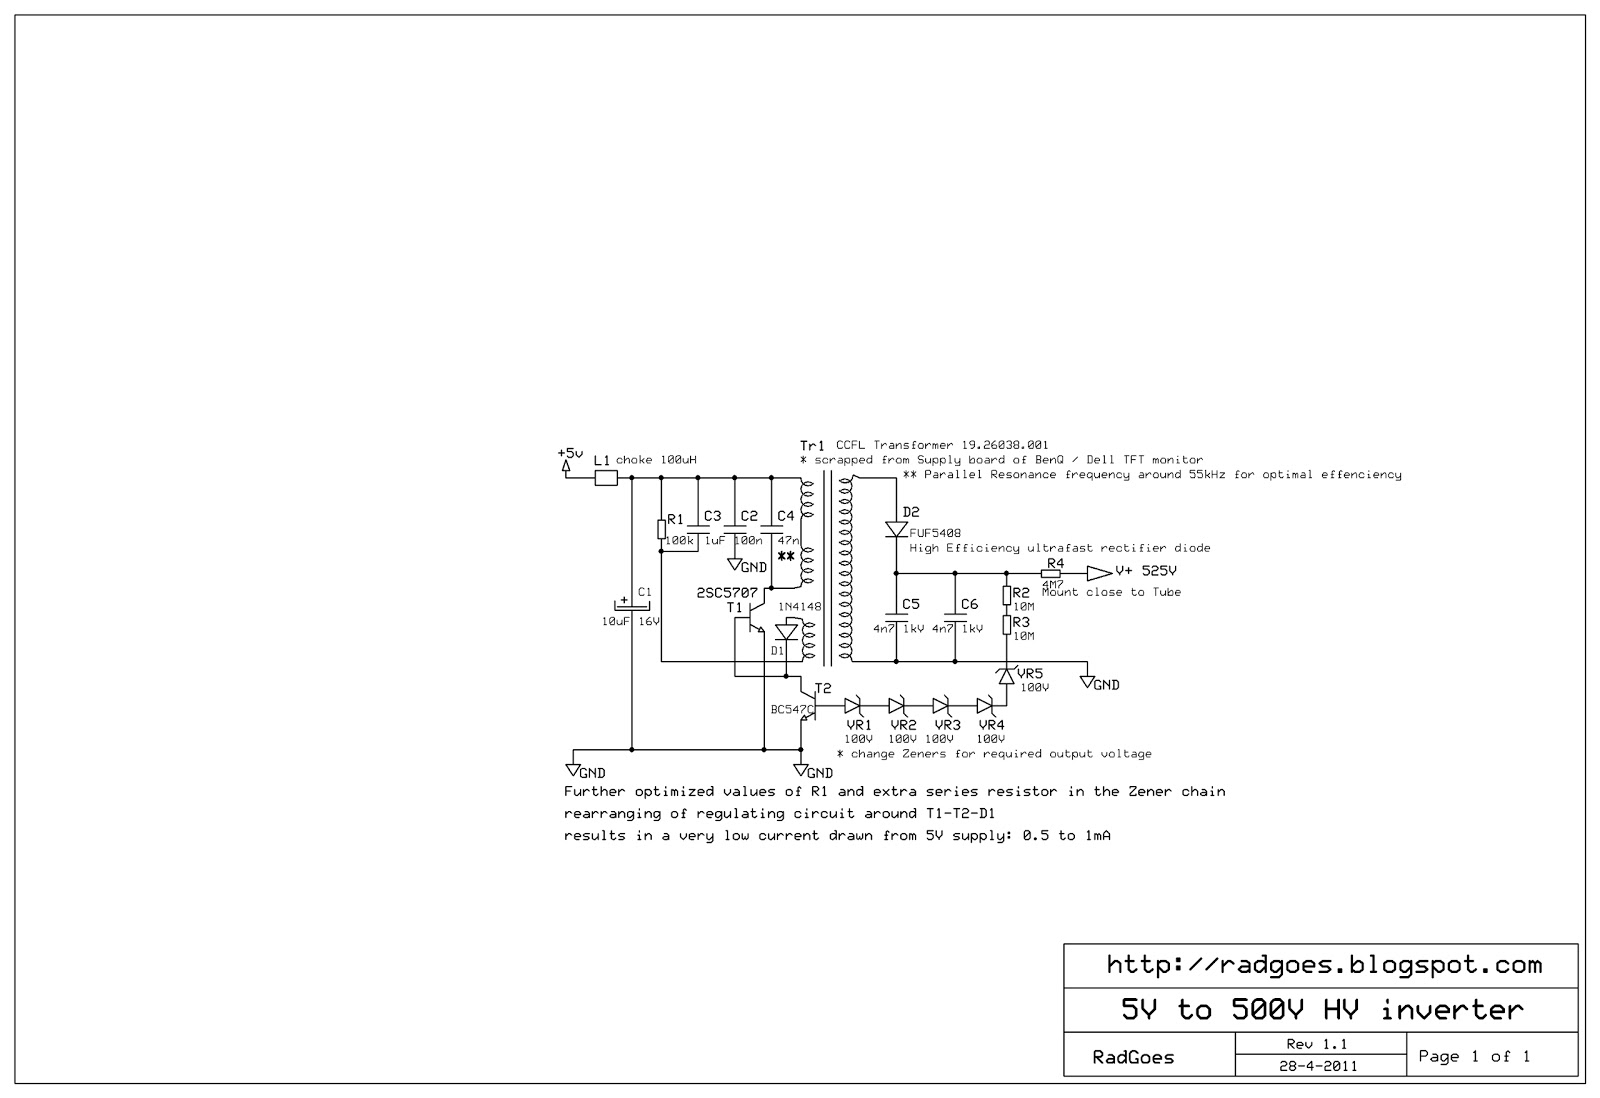 Radiation In Goes Zeeland Nl Geiger Counter 2011 Fig 1a The Basic Circuit Hv Inverter Schematic V11